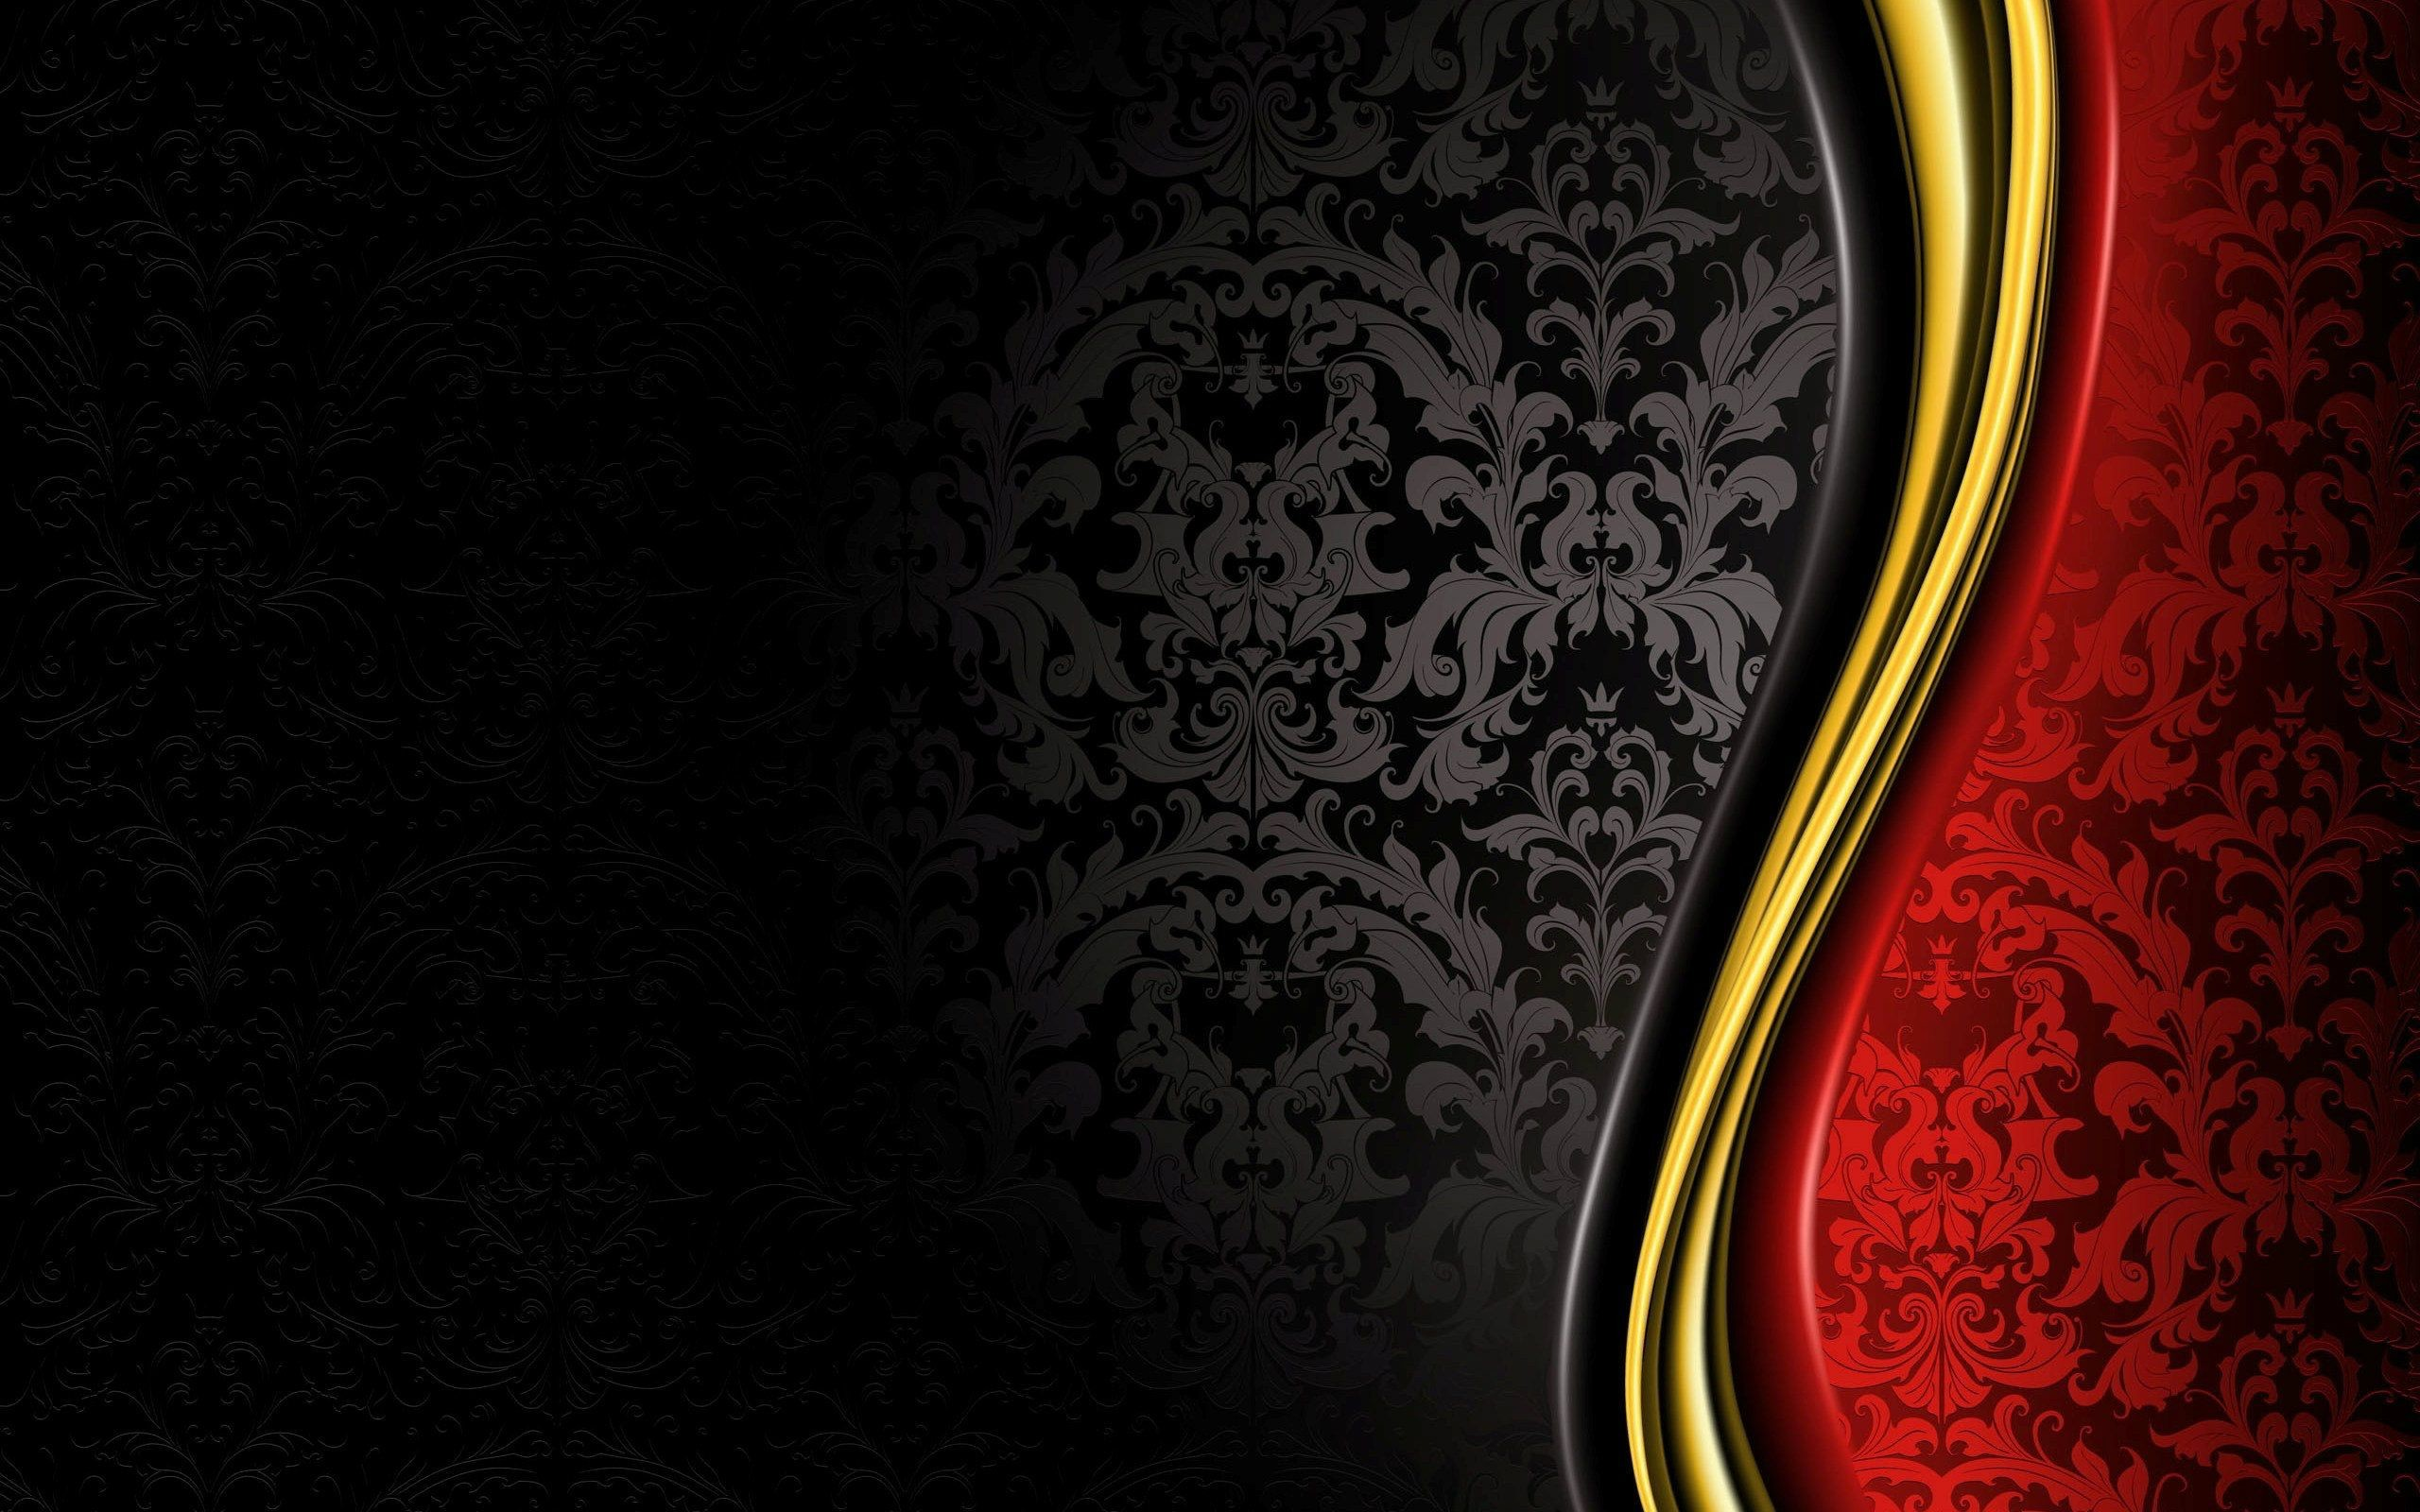 2560x1600 Black, red and yellow pattern background wallpaper - 2478 |